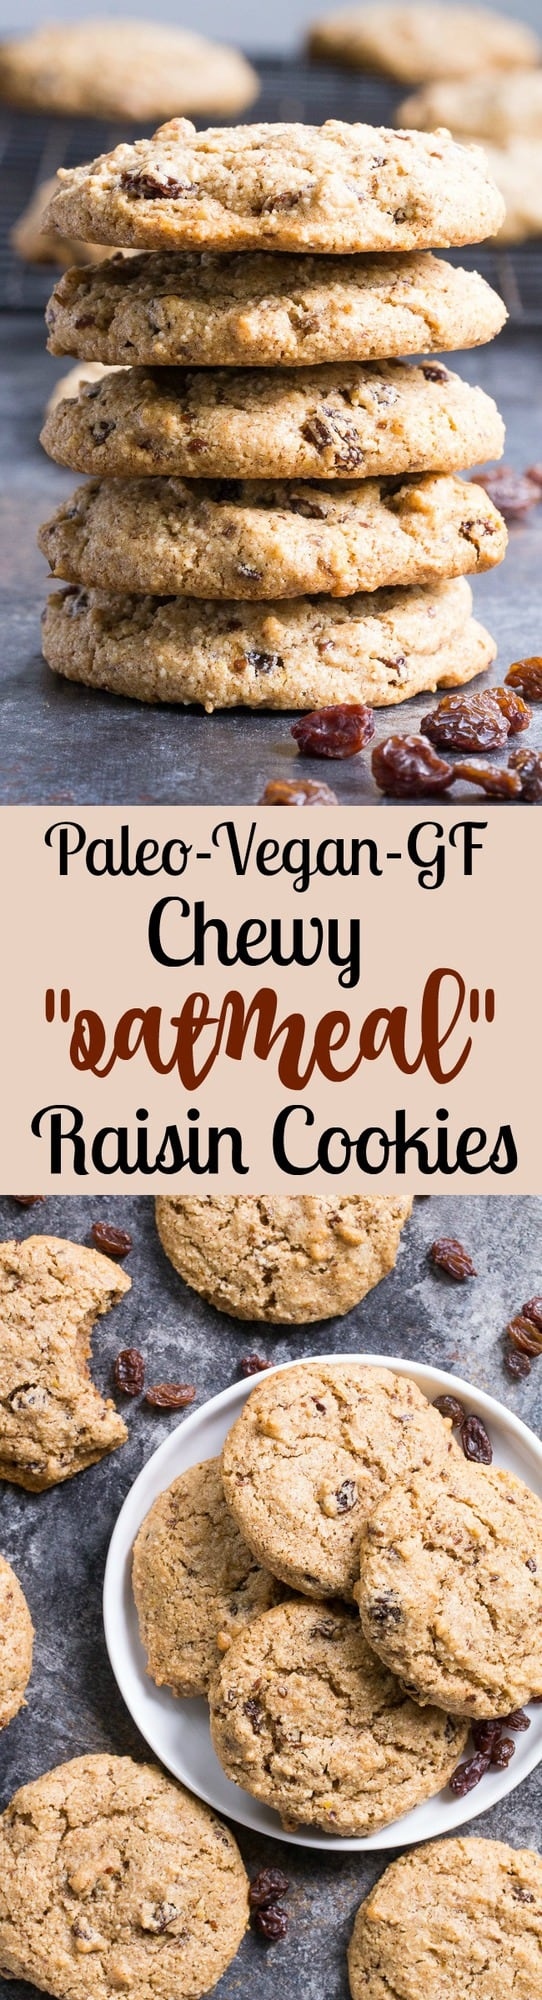 "These paleo ""oatmeal"" raisin cookies are chewy, sweet and perfectly spiced and taste just like traditional oatmeal cookies, yet are completely grain free, vegan and paleo.   You'll fool everyone into thinking they're the real thing!"